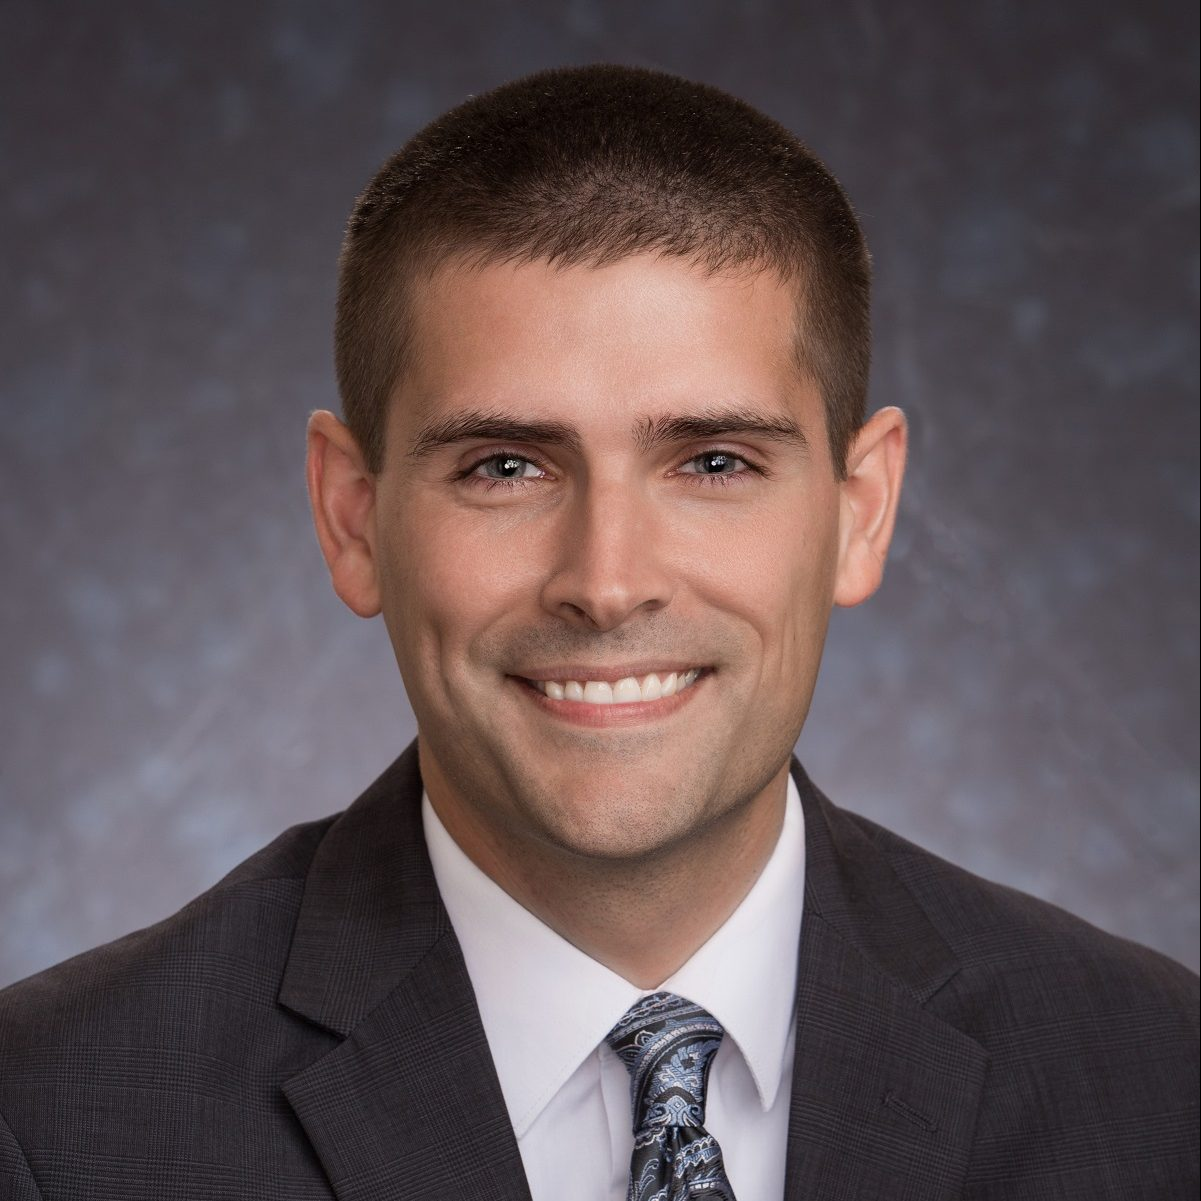 Kevin C. Woodworth, CPA